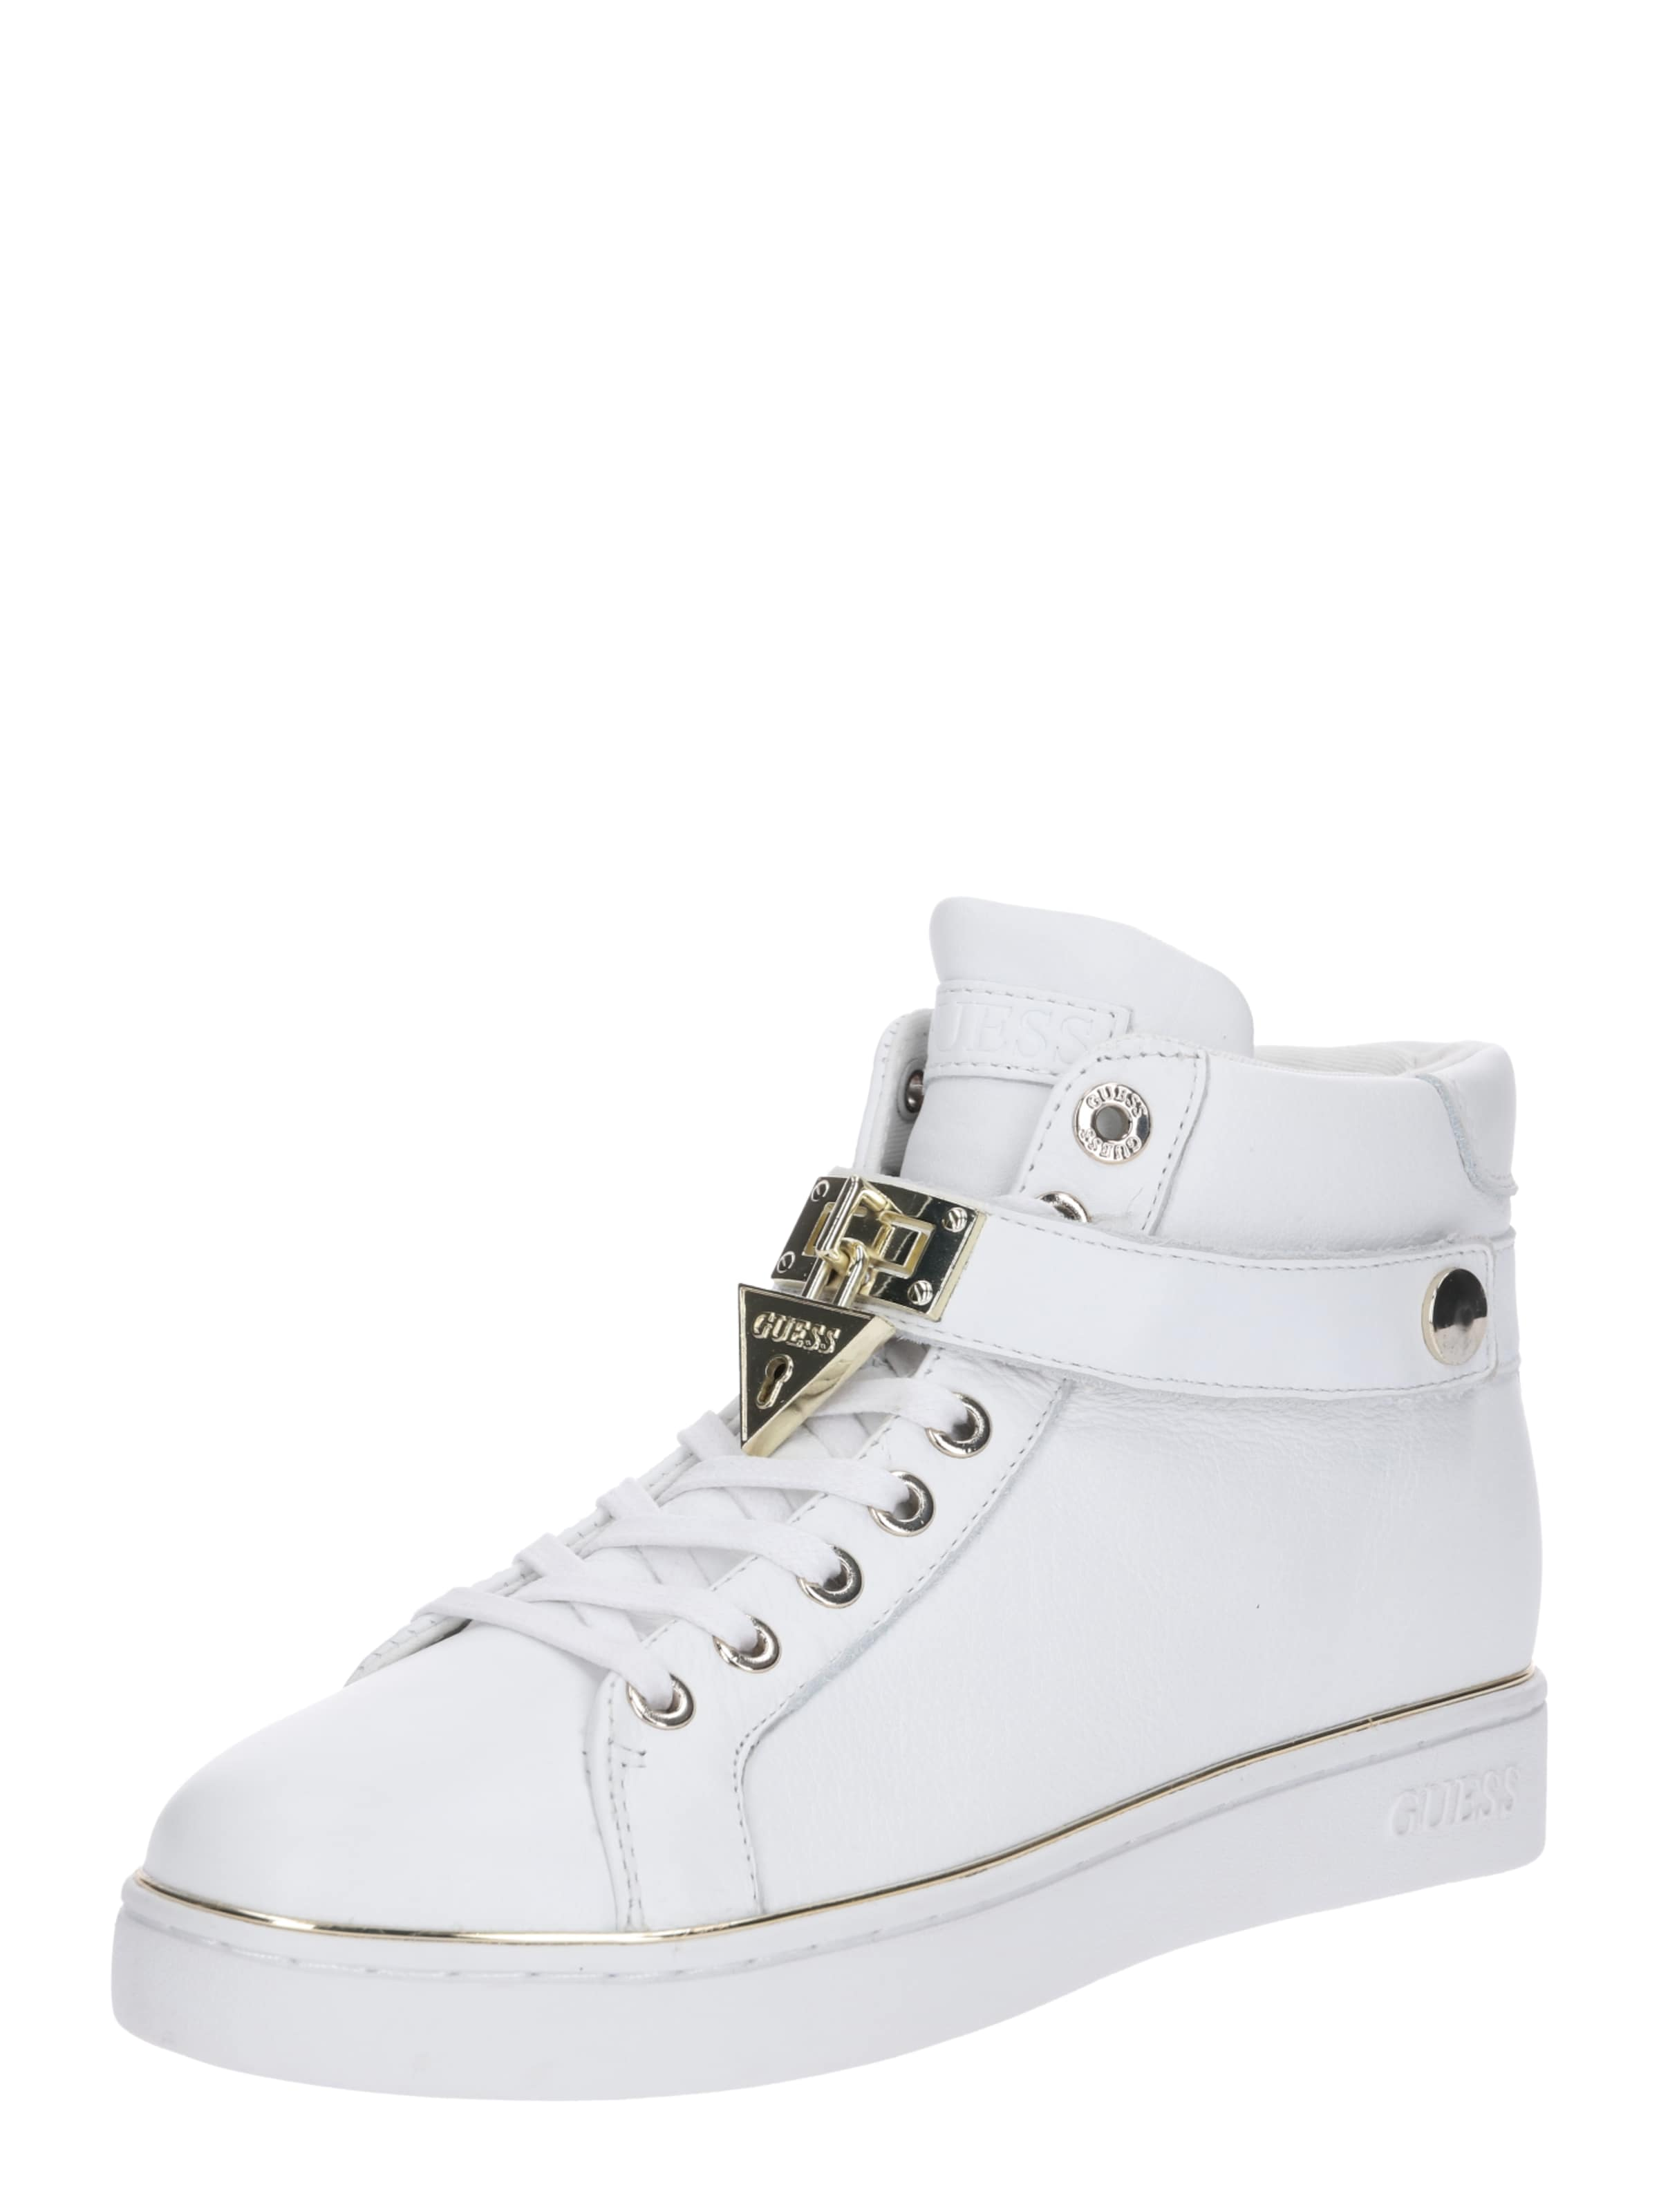 Guess 'boxing' In Weiß Weiß Guess Guess Sneaker Sneaker In 'boxing' nOP0wk8